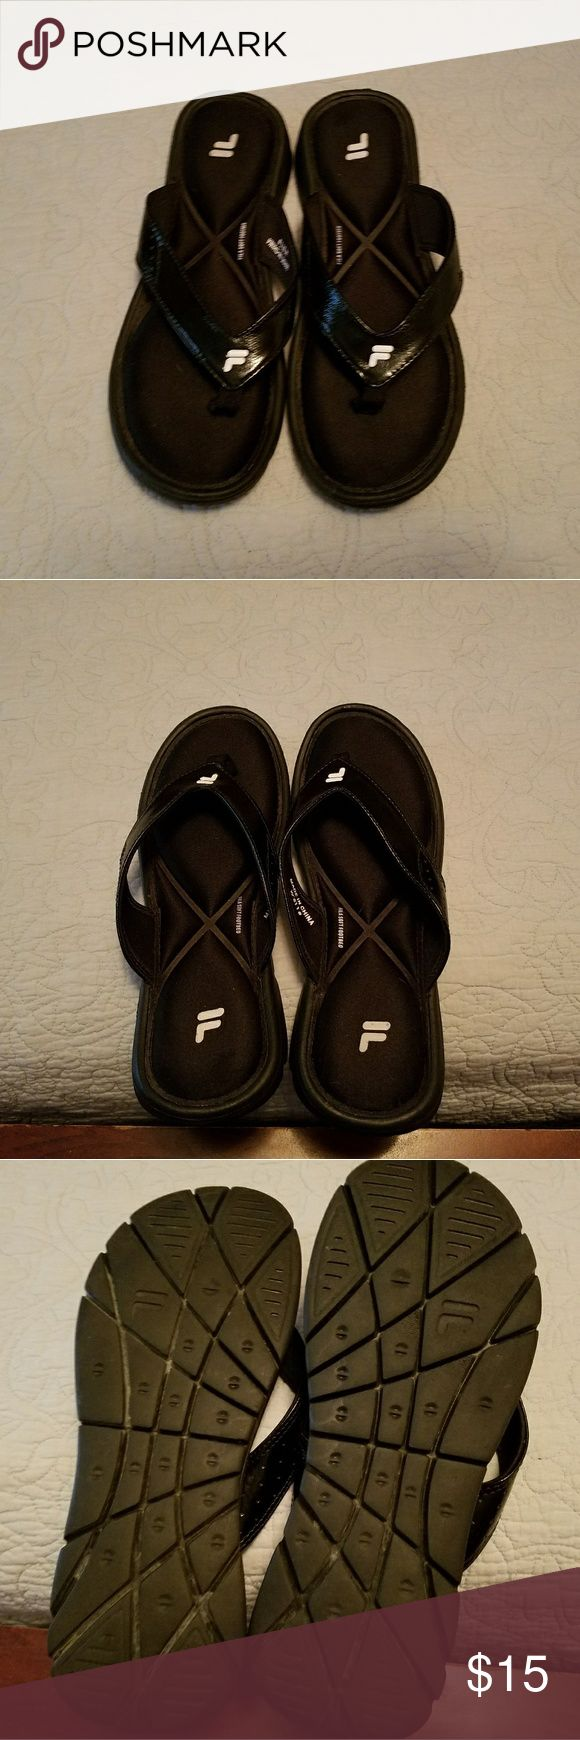 Women's size 11 Fila flip flops Women's black Fila flip flops with cushioned footbed. Excellent condition. Fila Shoes Sandals